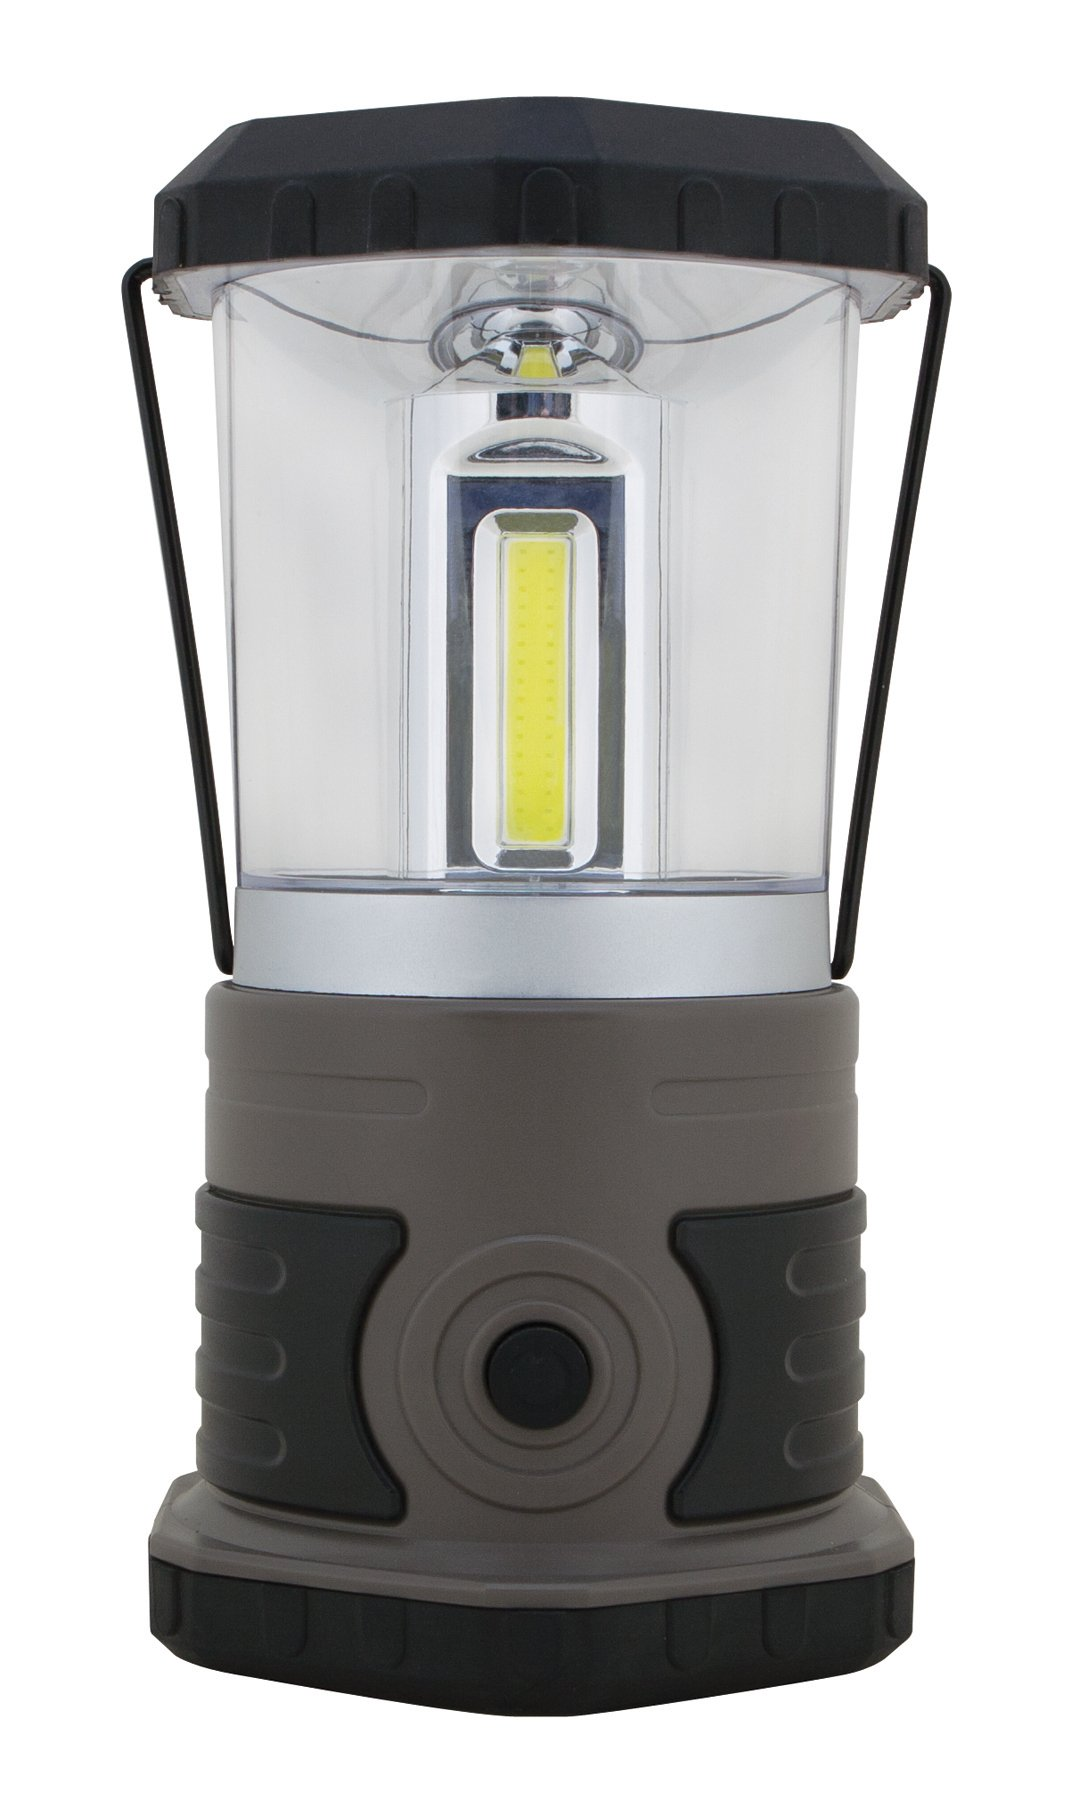 Performance Tool Black ATAK 403, 1000 Lumen Ultra Bright COB LED Rechargeable Camping Lantern